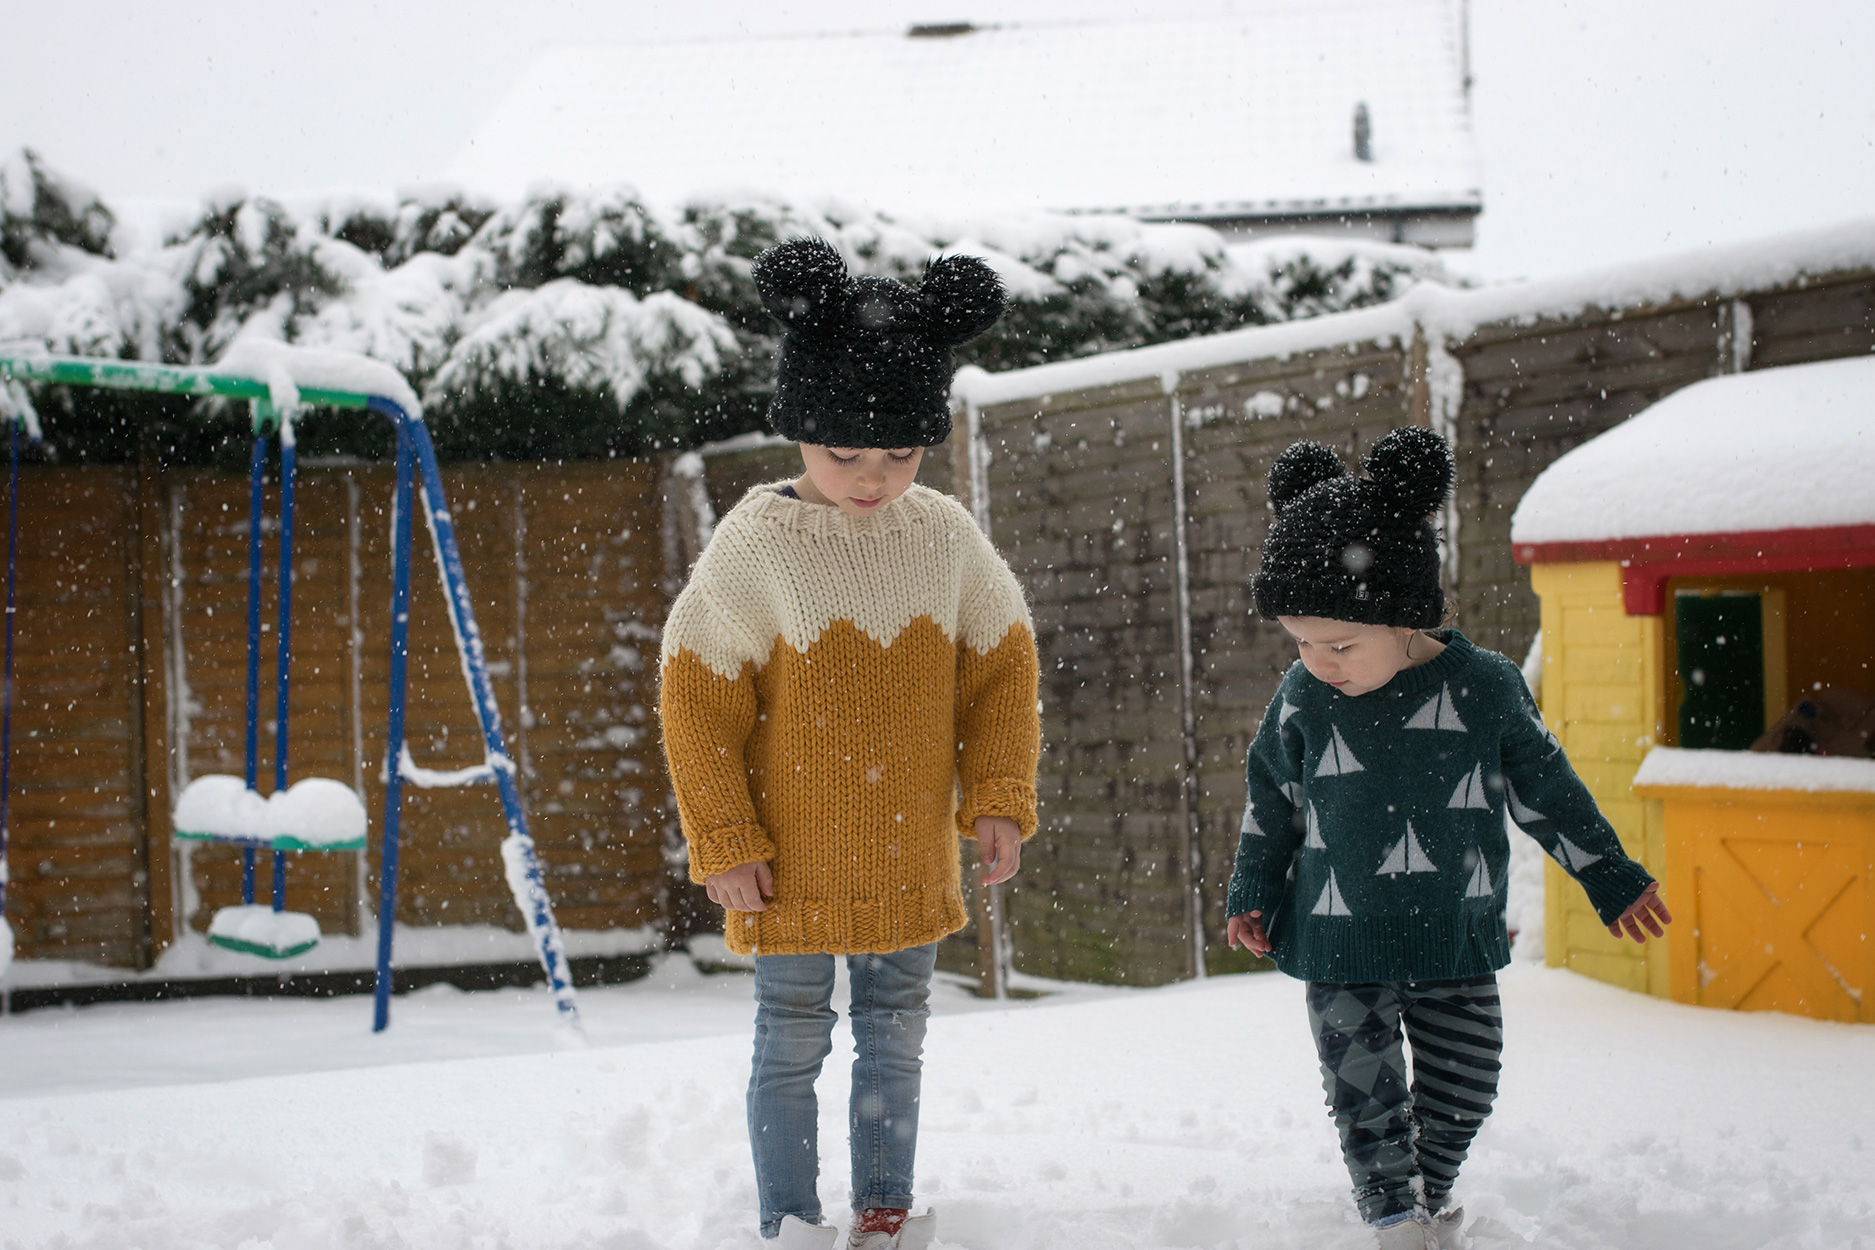 Family including two brothers playing in snow blizzard wearing Mini Rodini K2 penguins, Rylee and Cru fur and Individual banana snowsuit